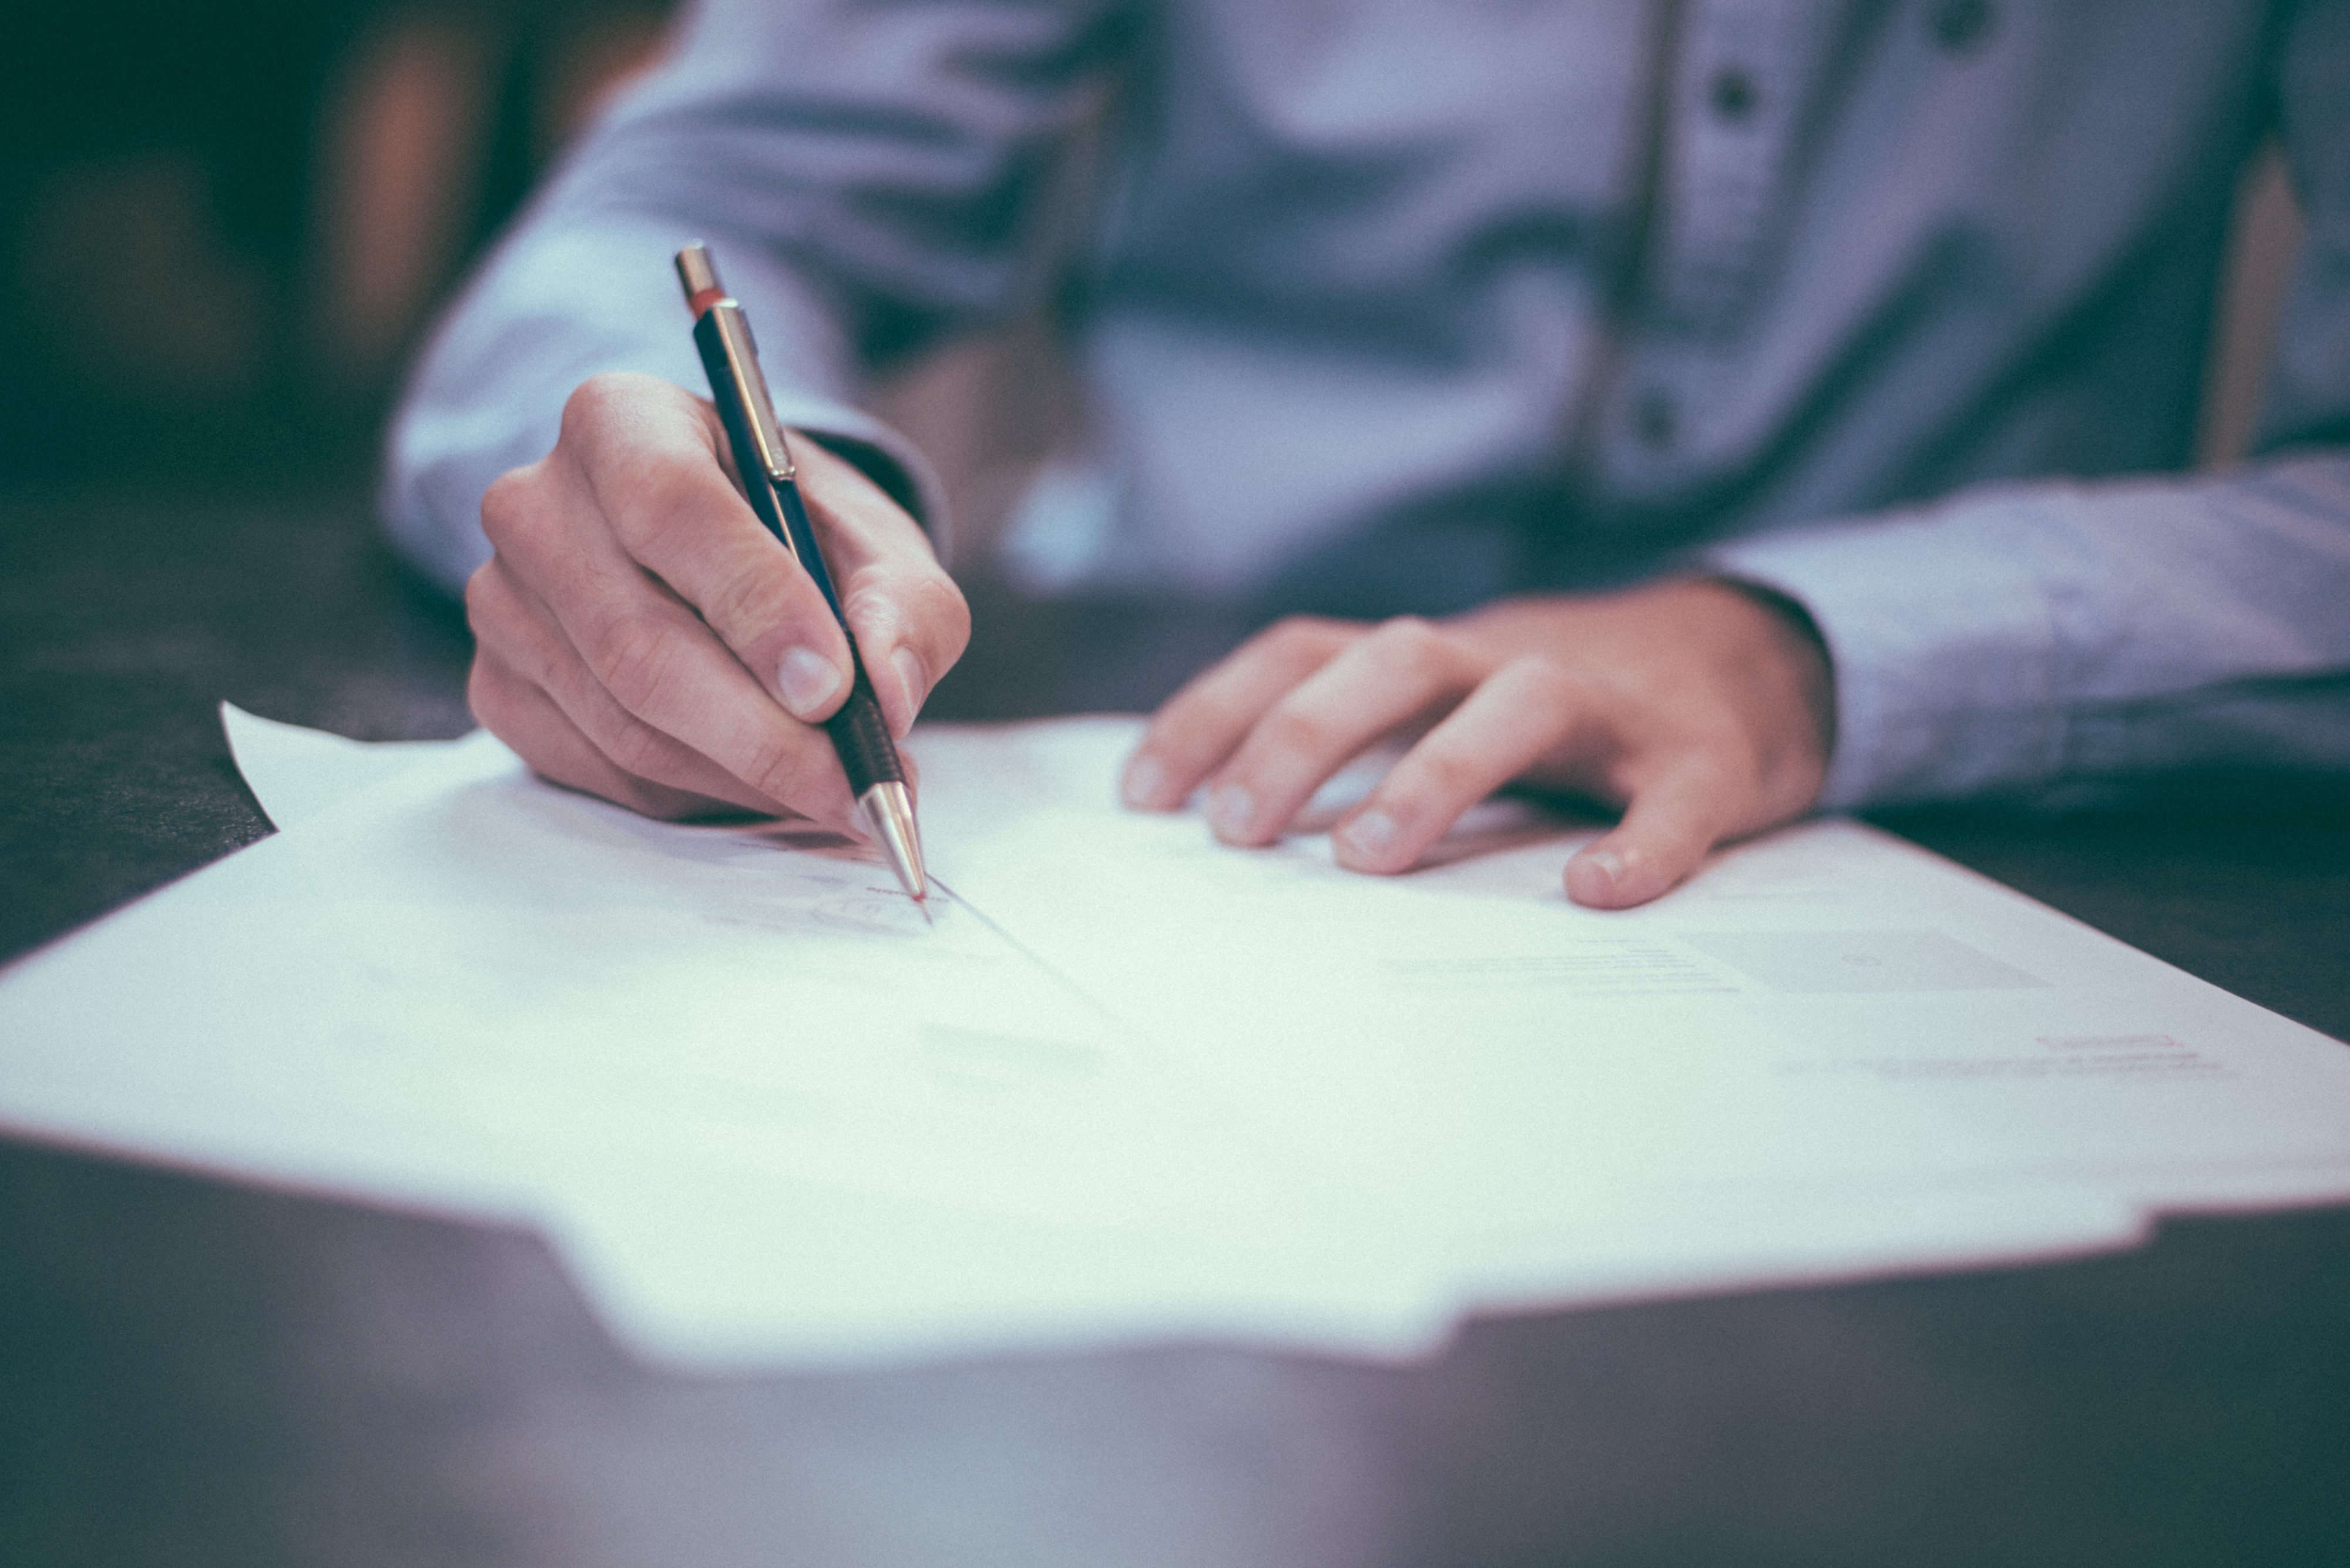 A person with a blue button up shirt holding a pen writing on paper